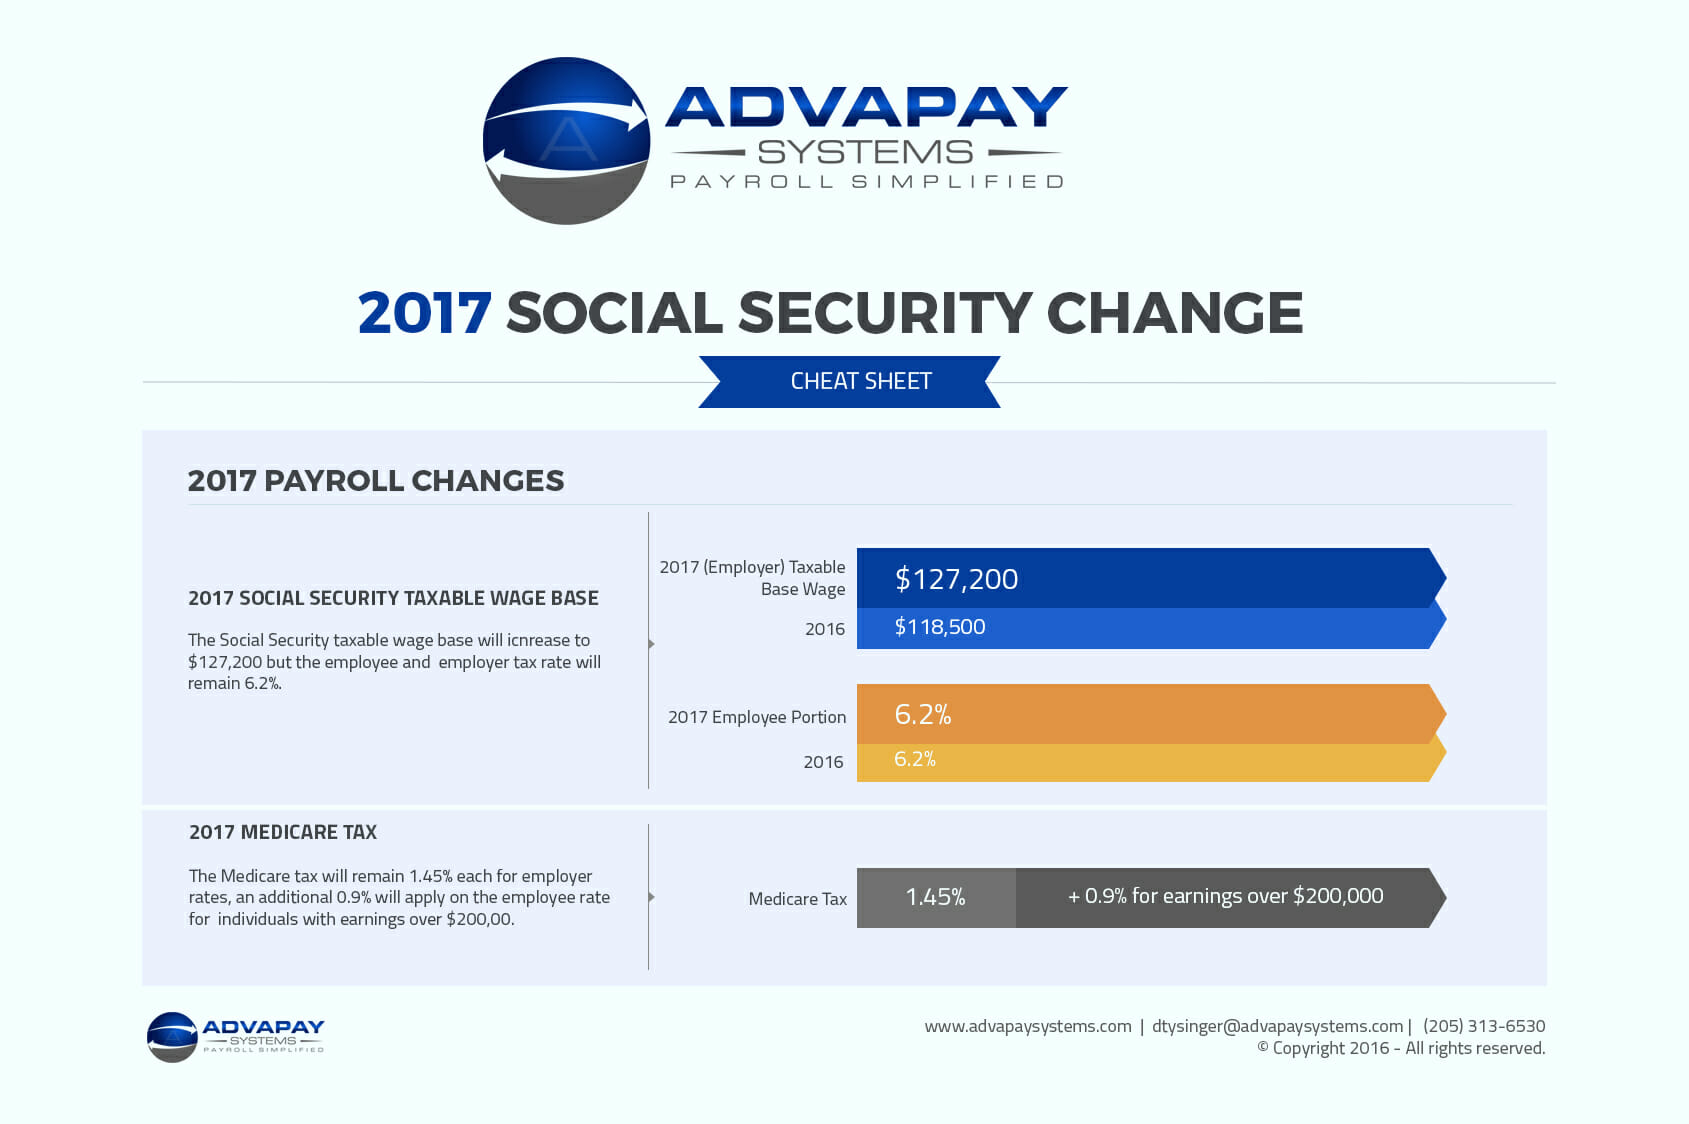 Social Security Taxable Wage Base